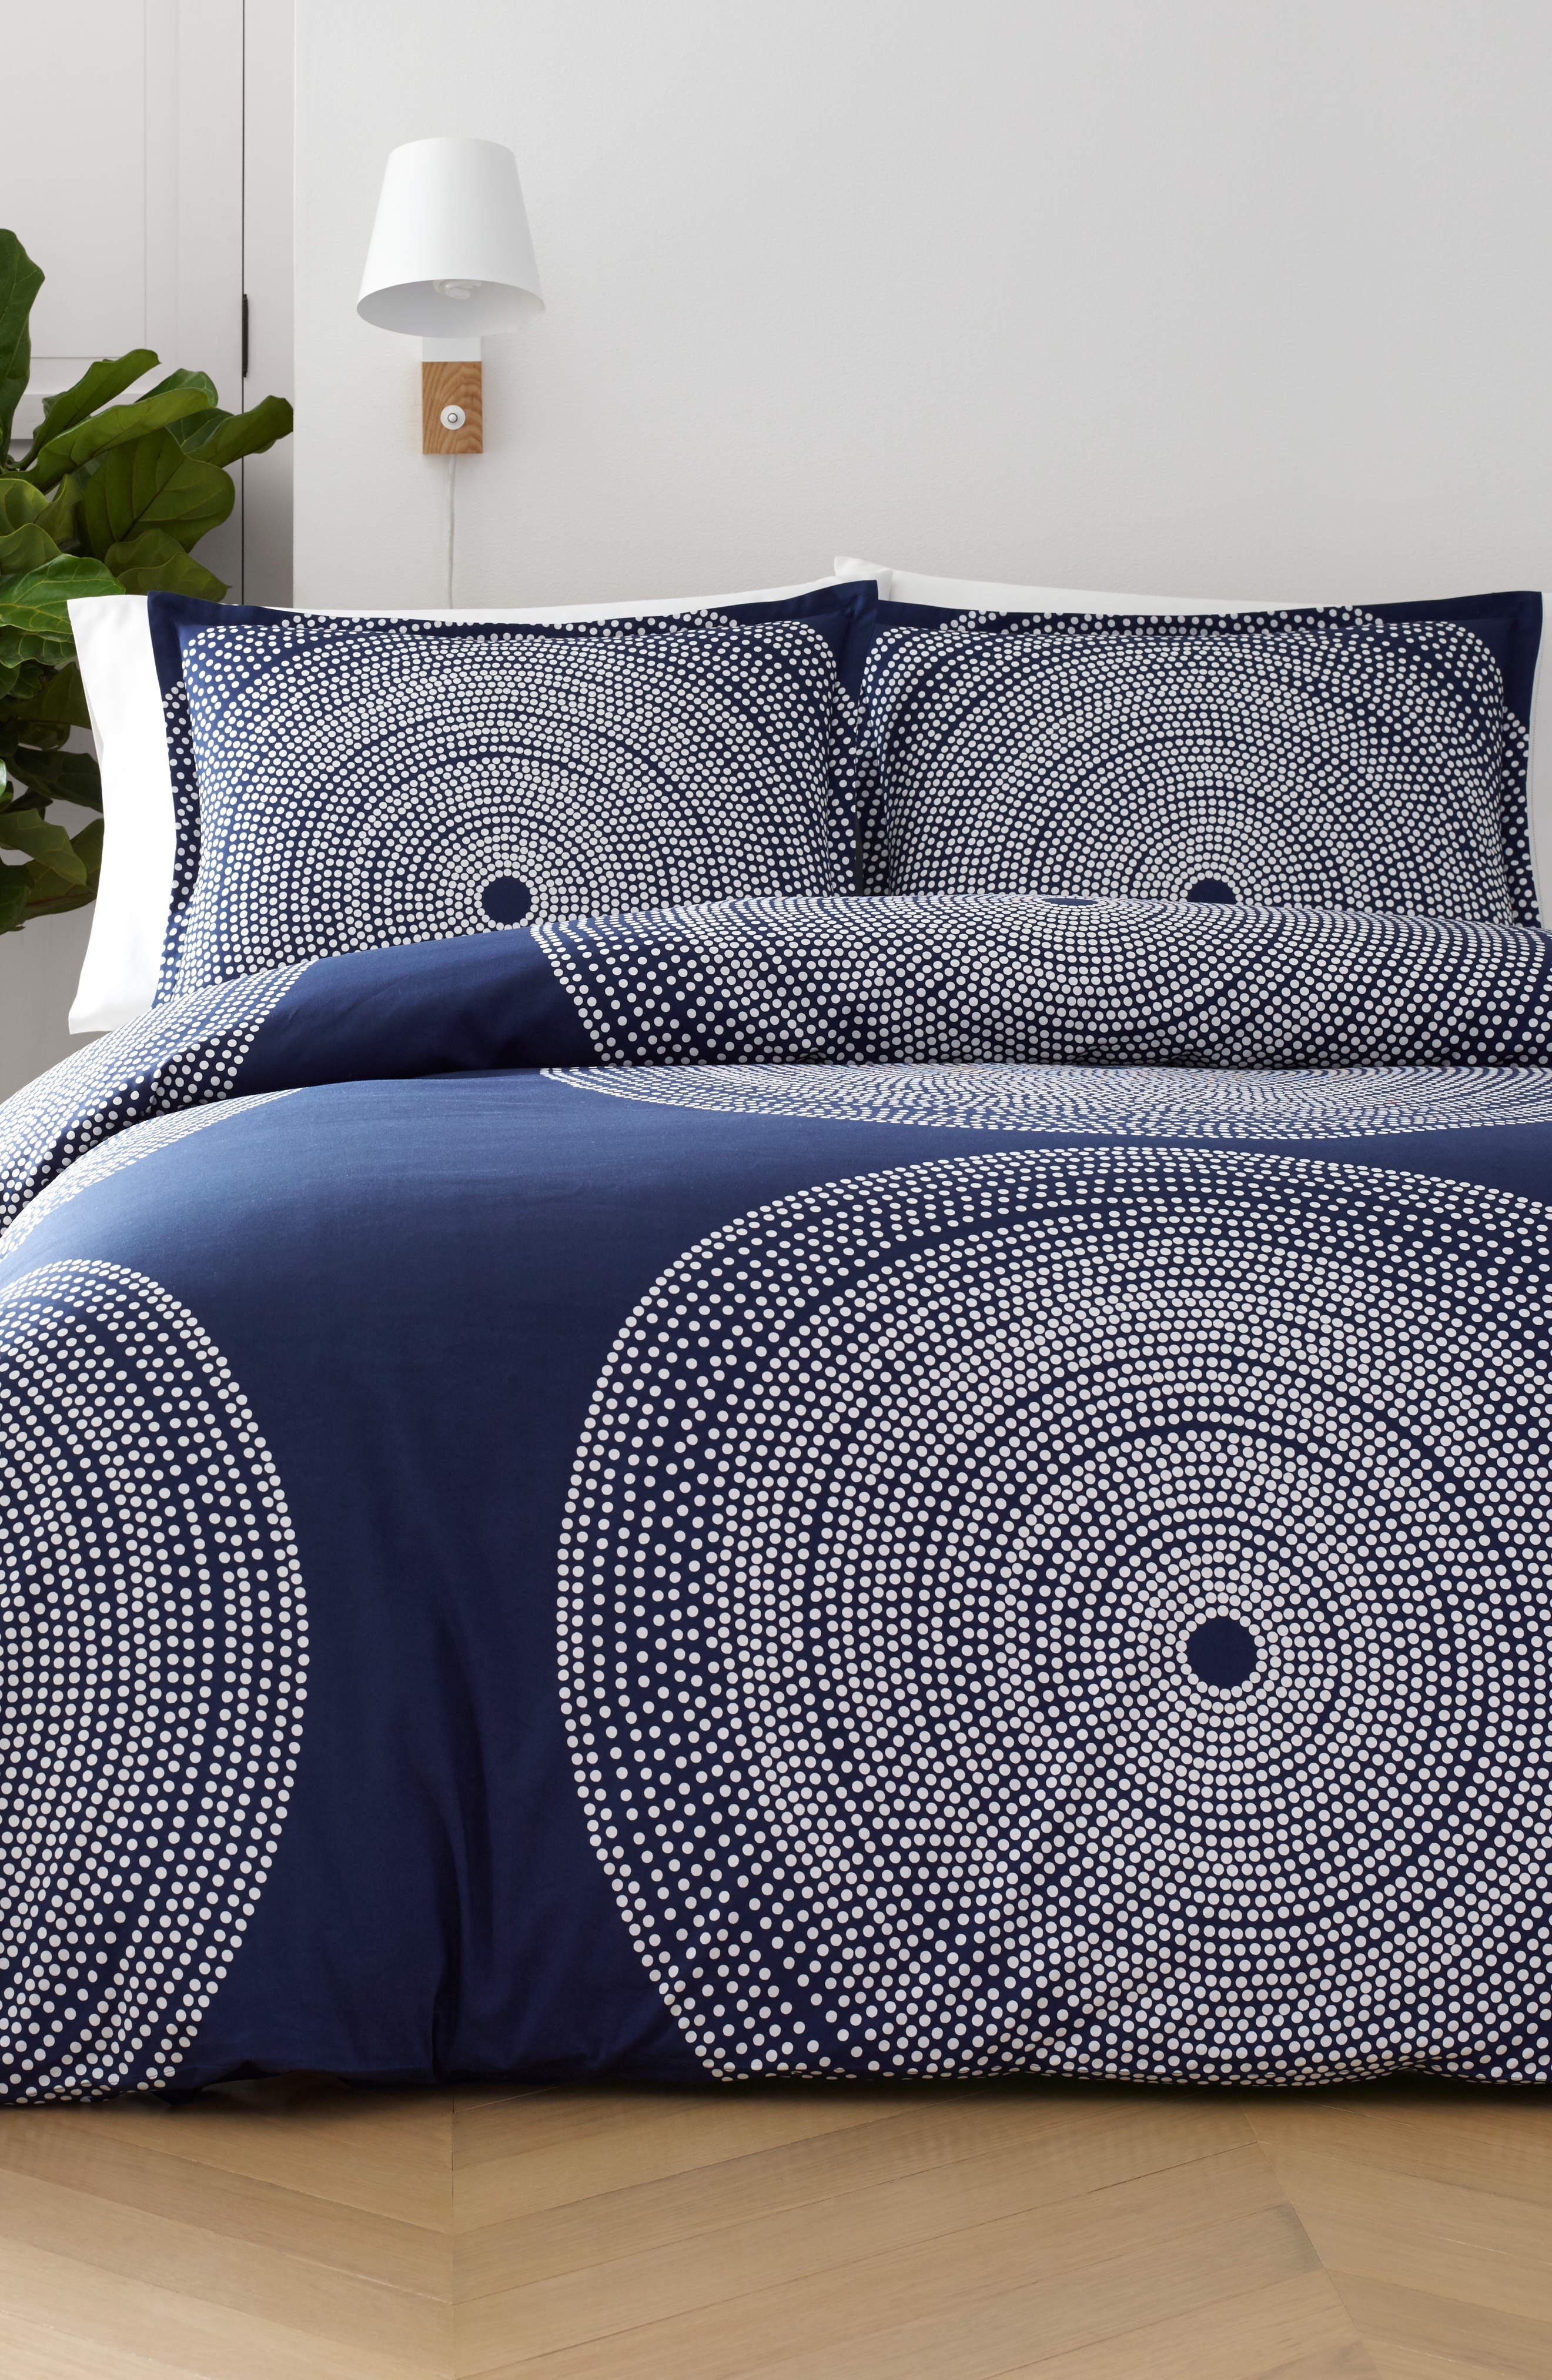 MARIMEKKO, Fokus Comforter & Sham Set, Main thumbnail 1, color, DARK BLUE